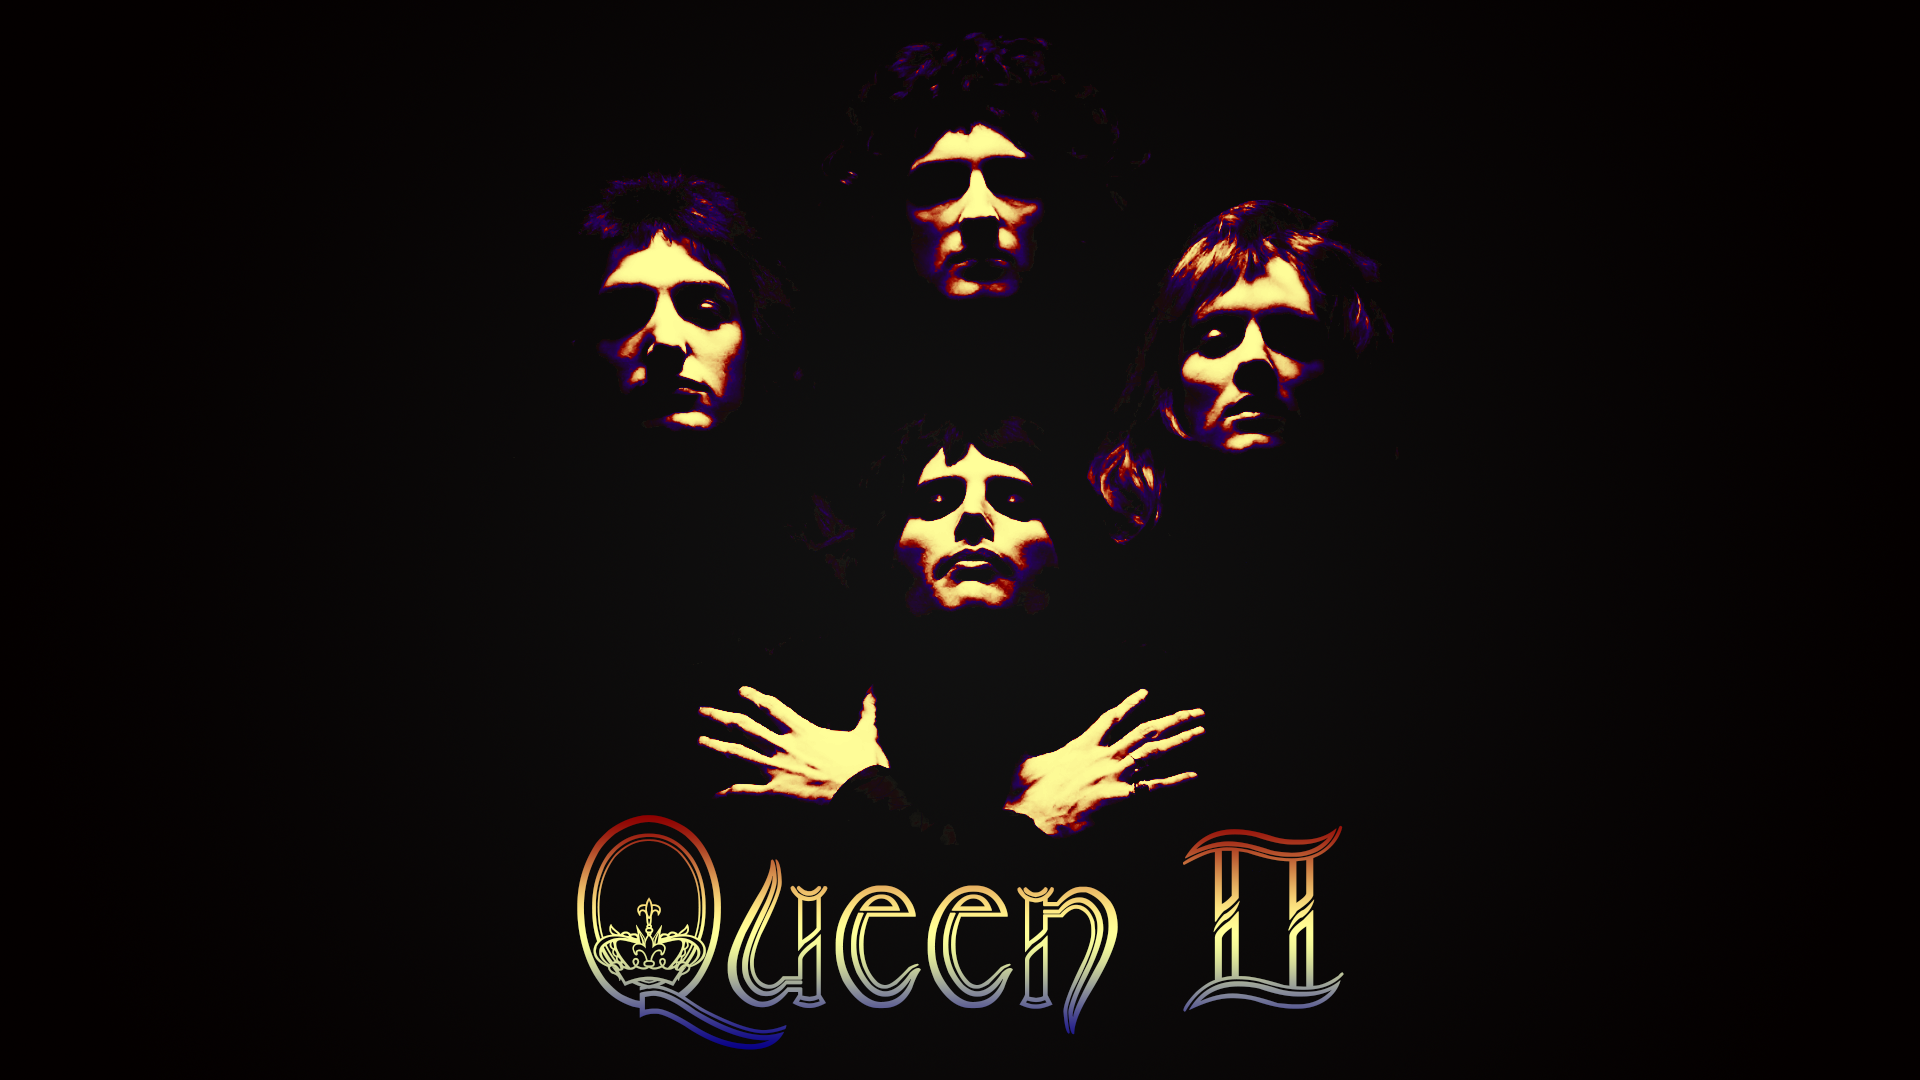 High Quality Queen Wallpapers, Aurelio Hankin